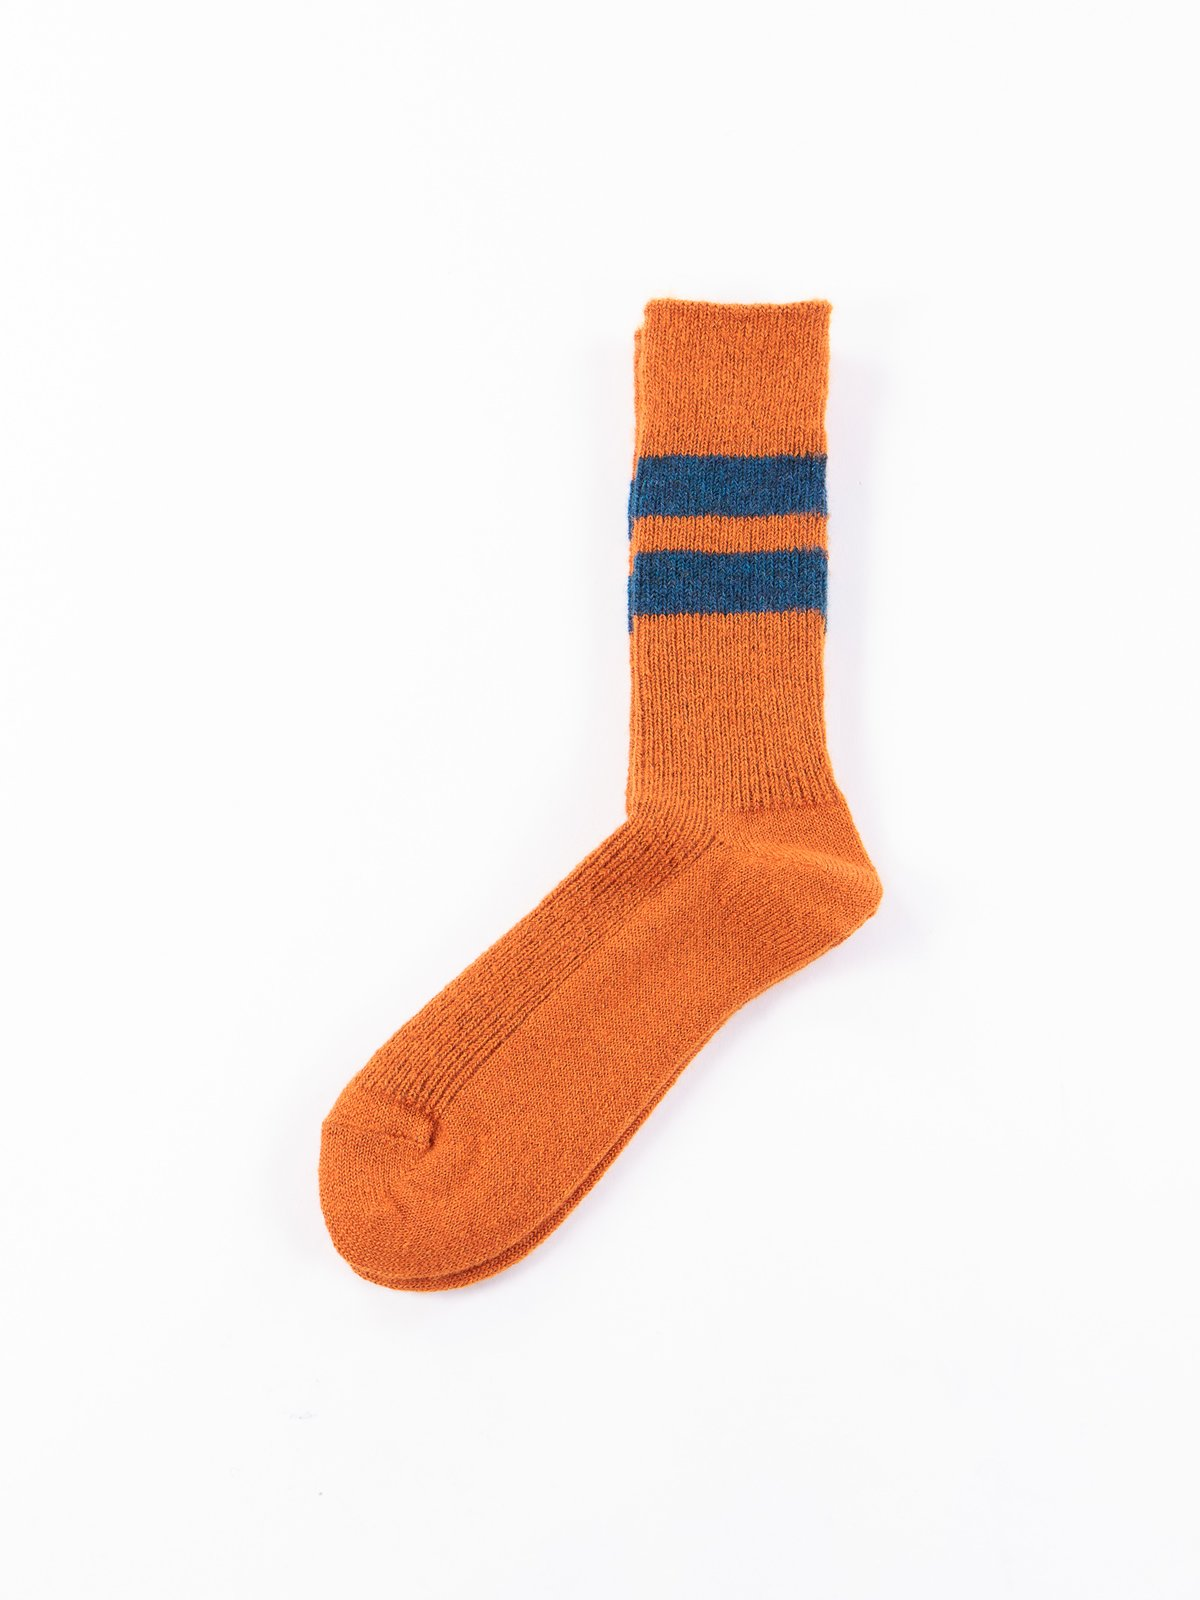 Orange Reversible Brushed Mohair Crew Socks - Image 1